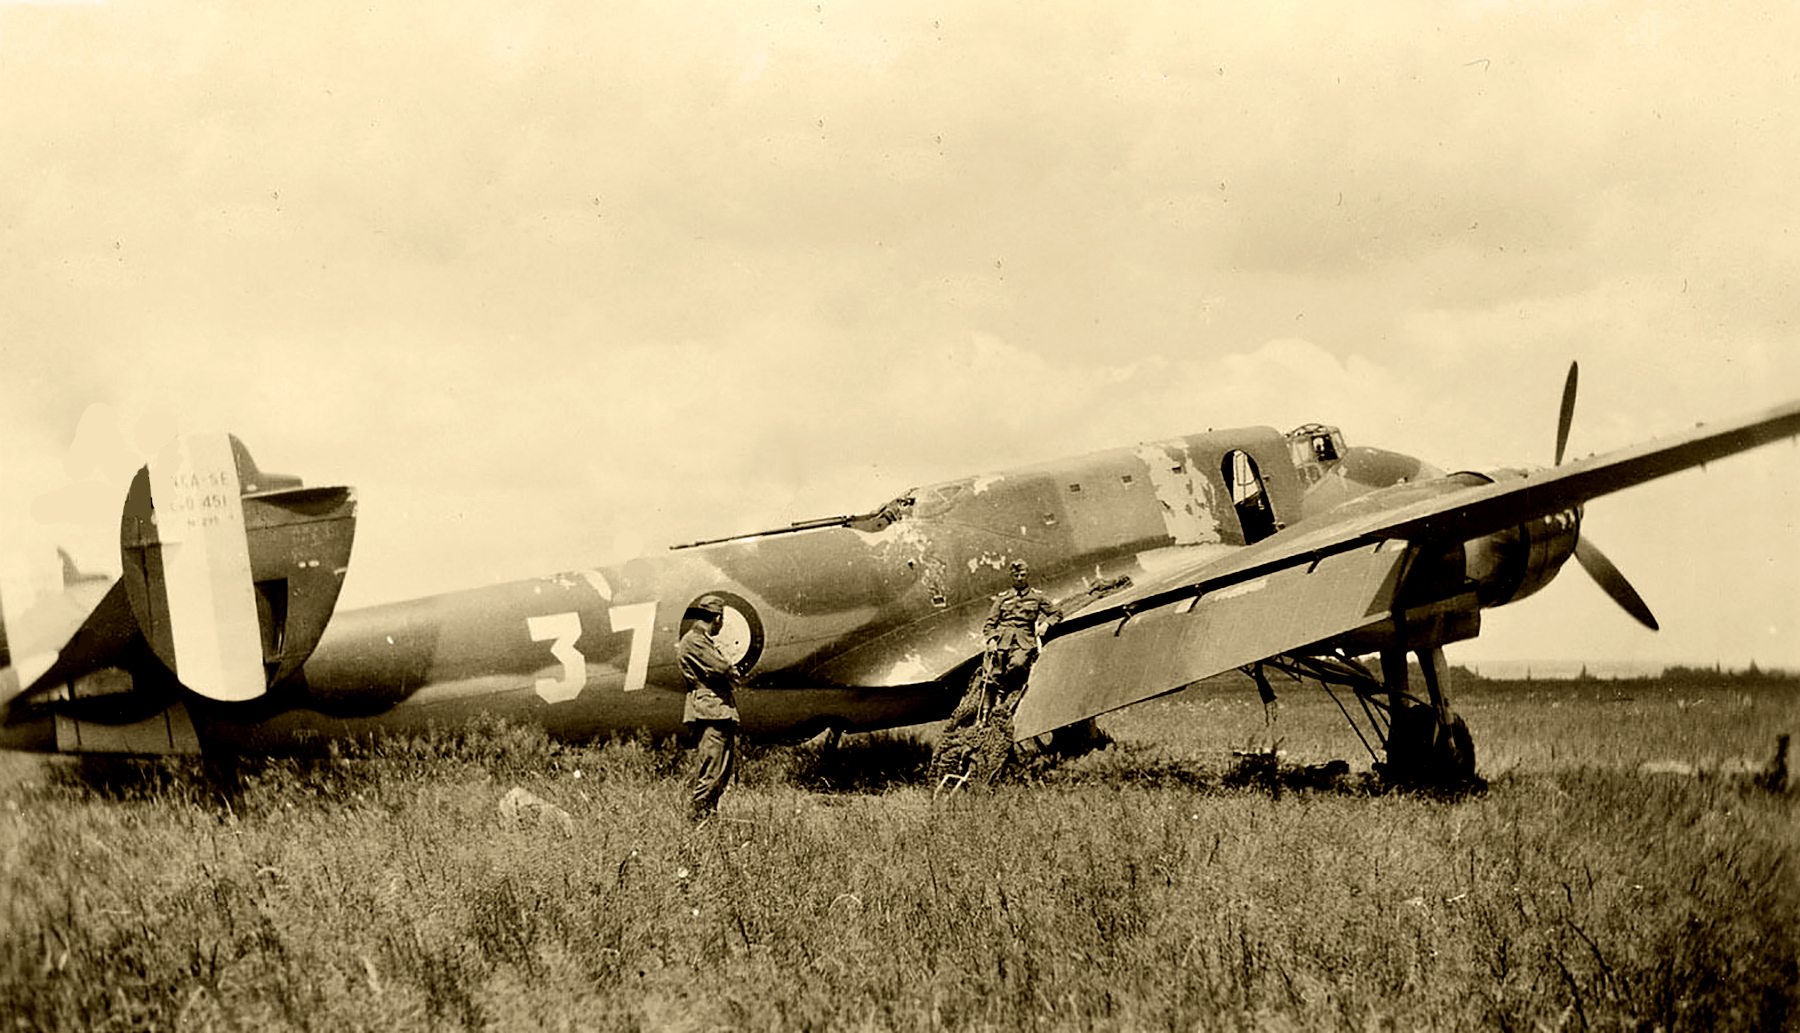 French Airforce Liore et Olivier LeO 451 White 37 destroyed whilst grounded France May Jun 1940 ebay 01